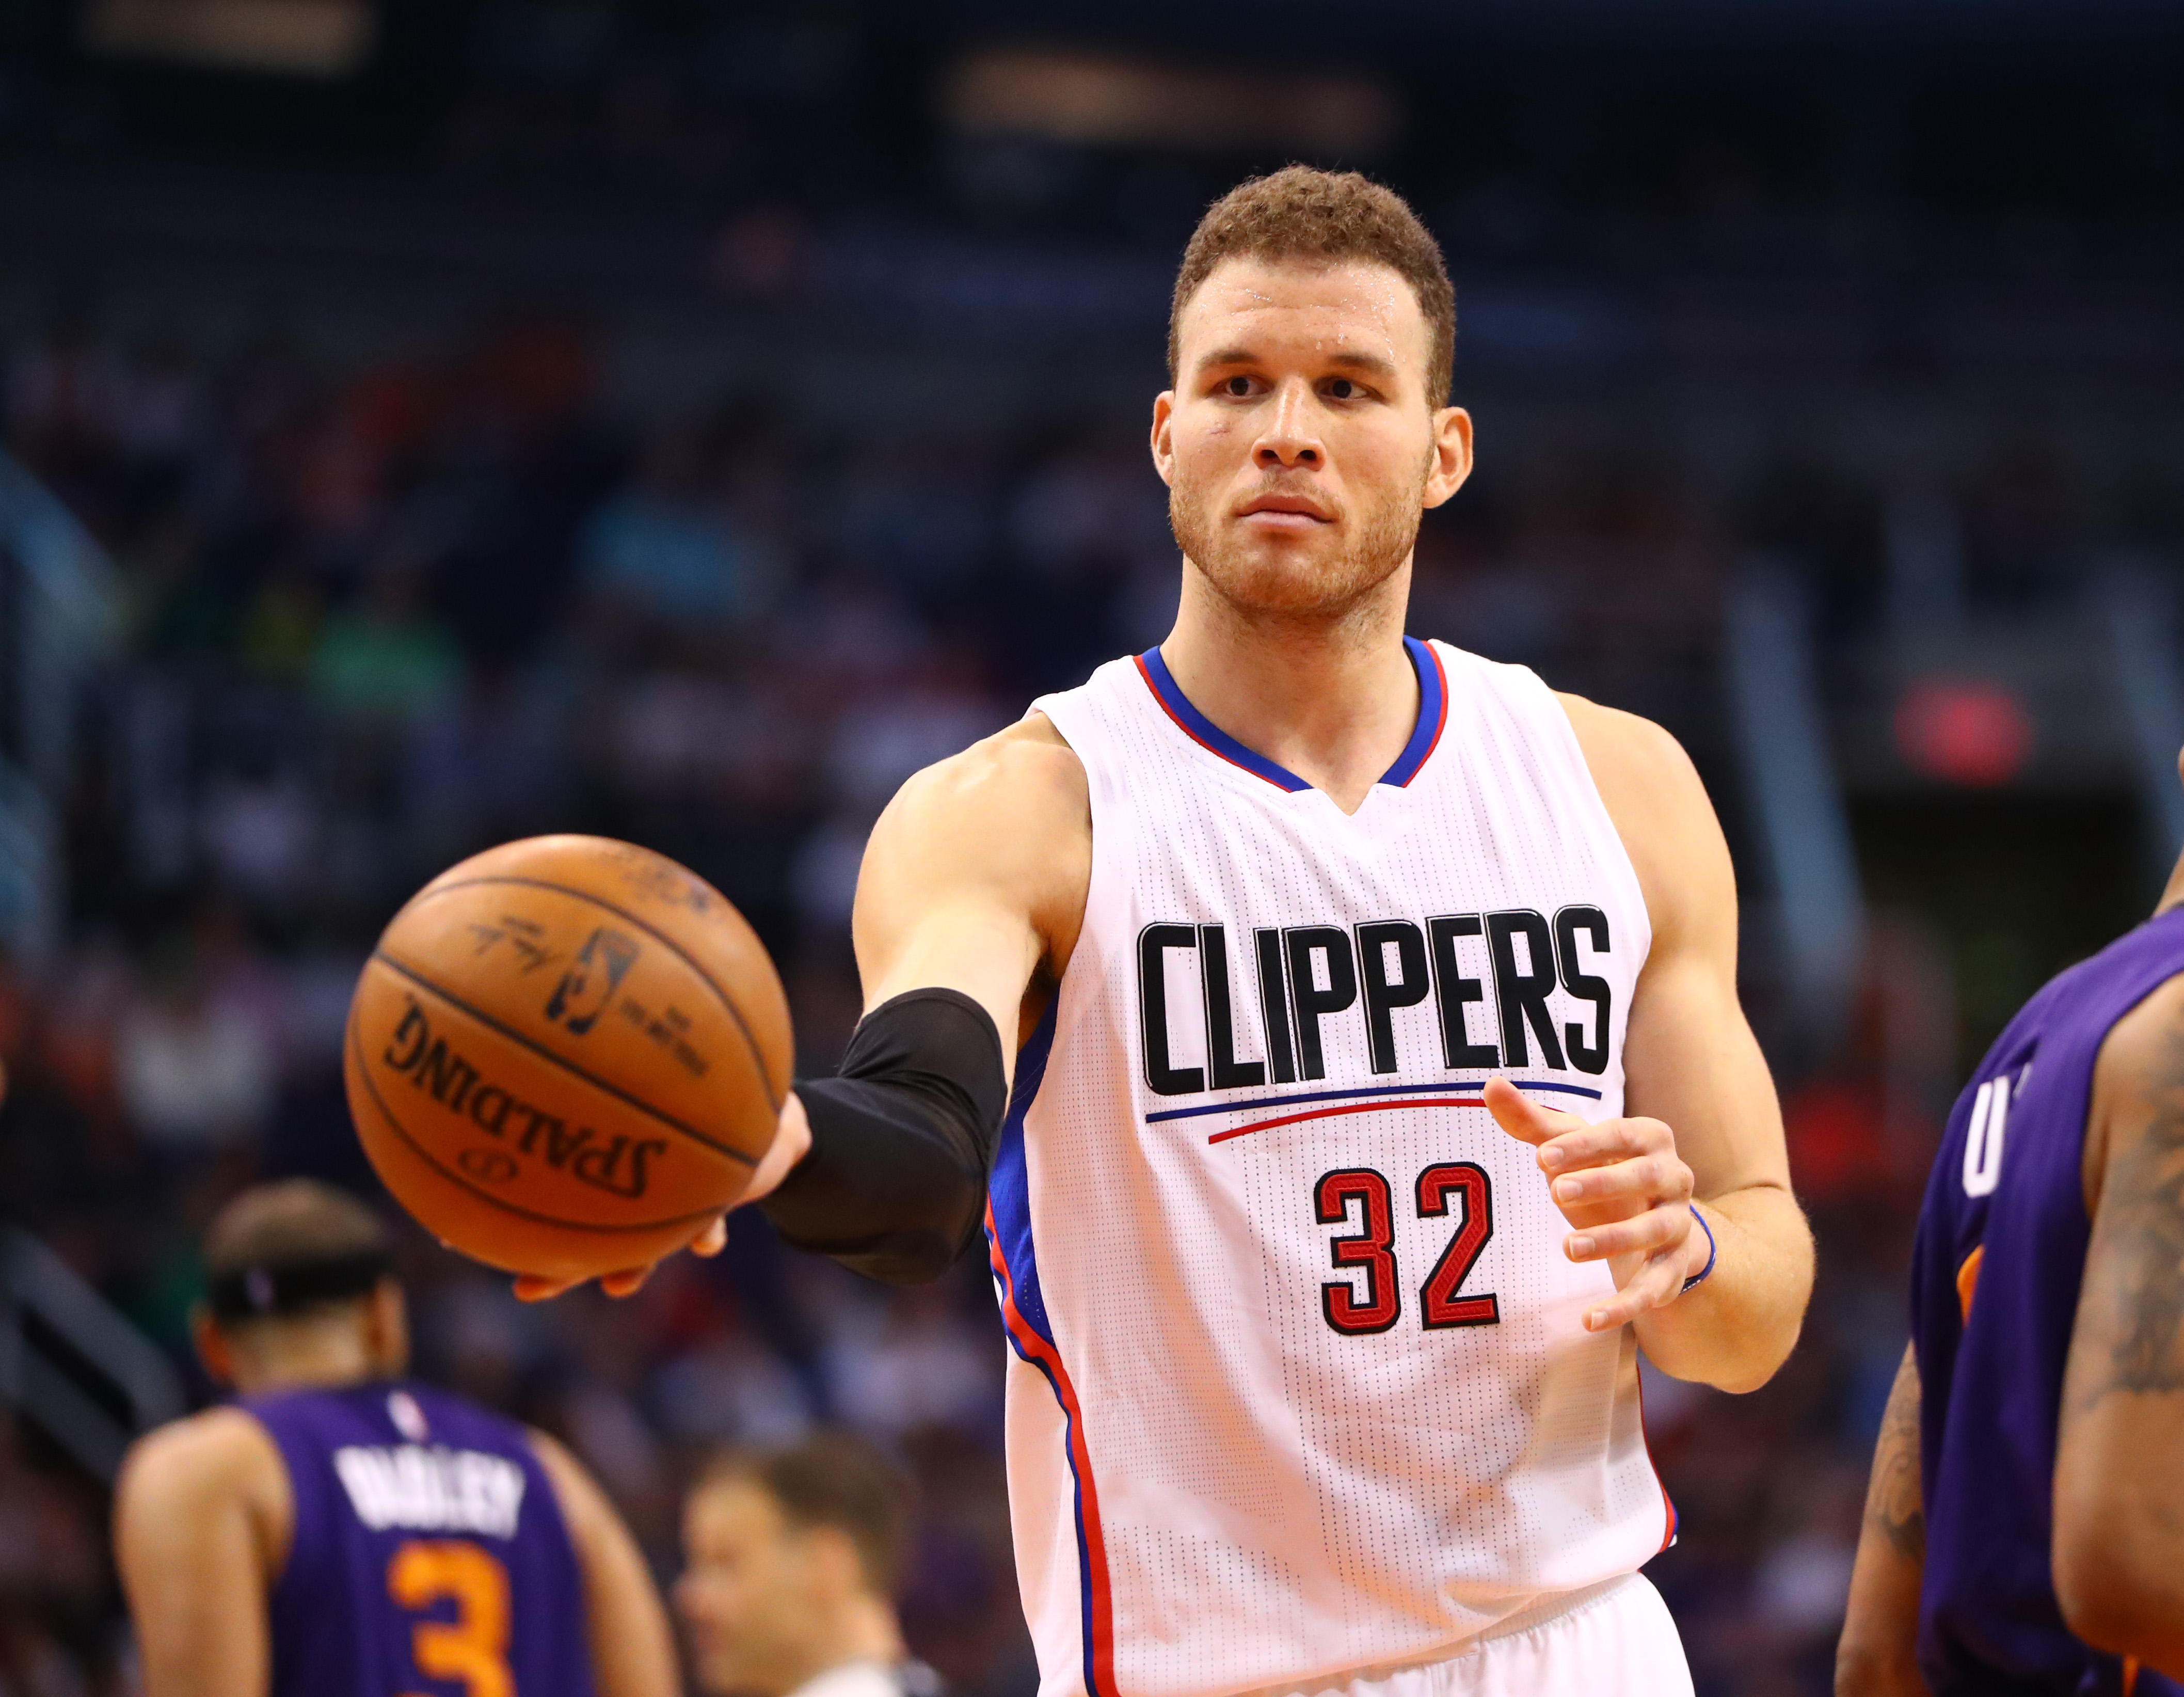 Blake Griffin will likely become a free agent. While he'll garner ... Matt Barnes Clippers 2017